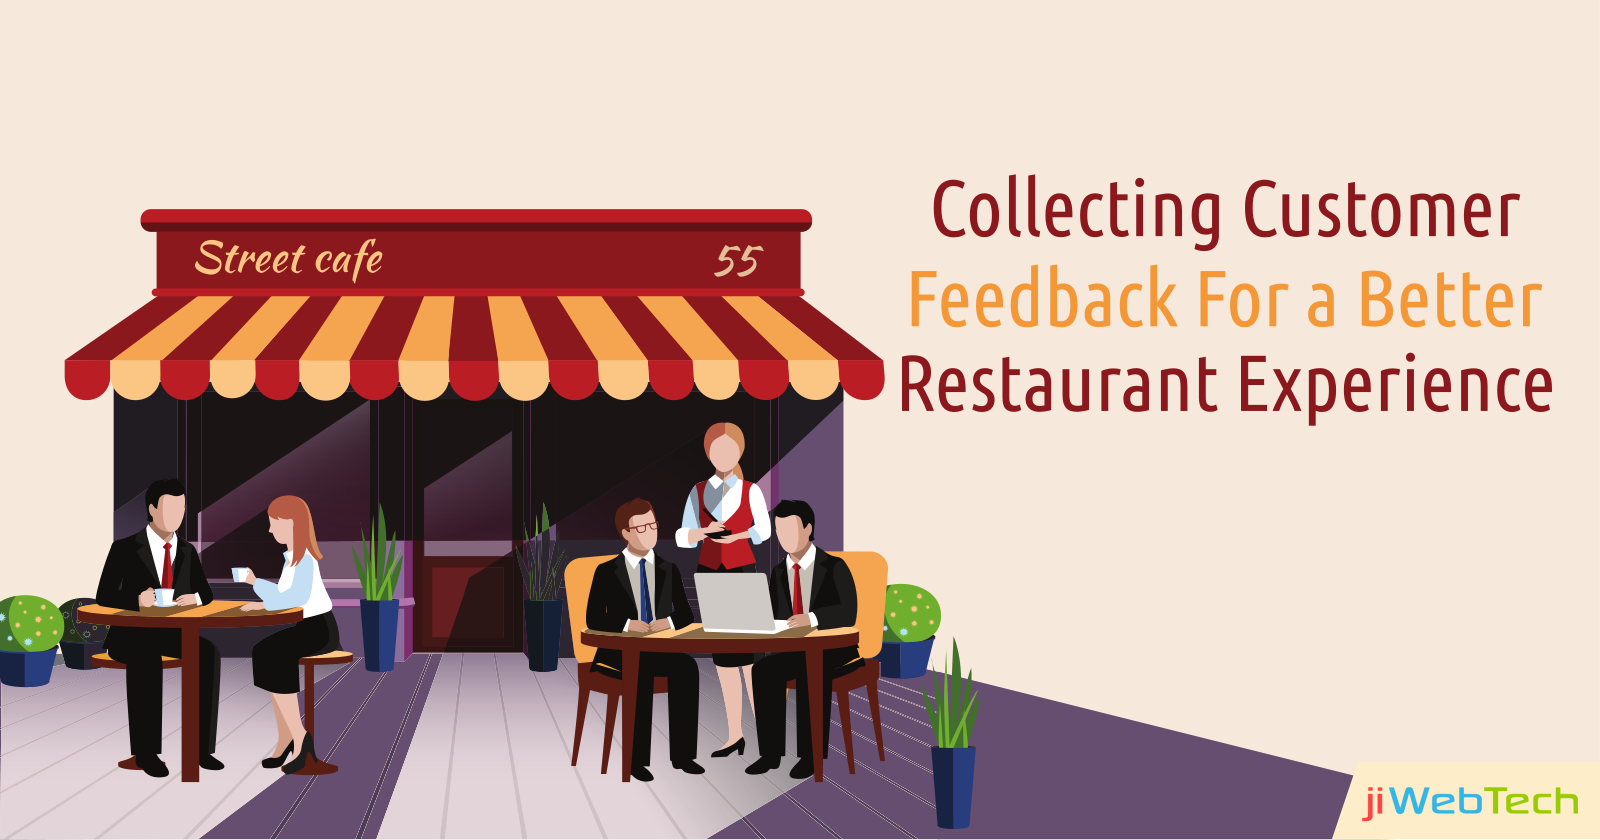 Improve Your Restaurant Services with Customer Feedback